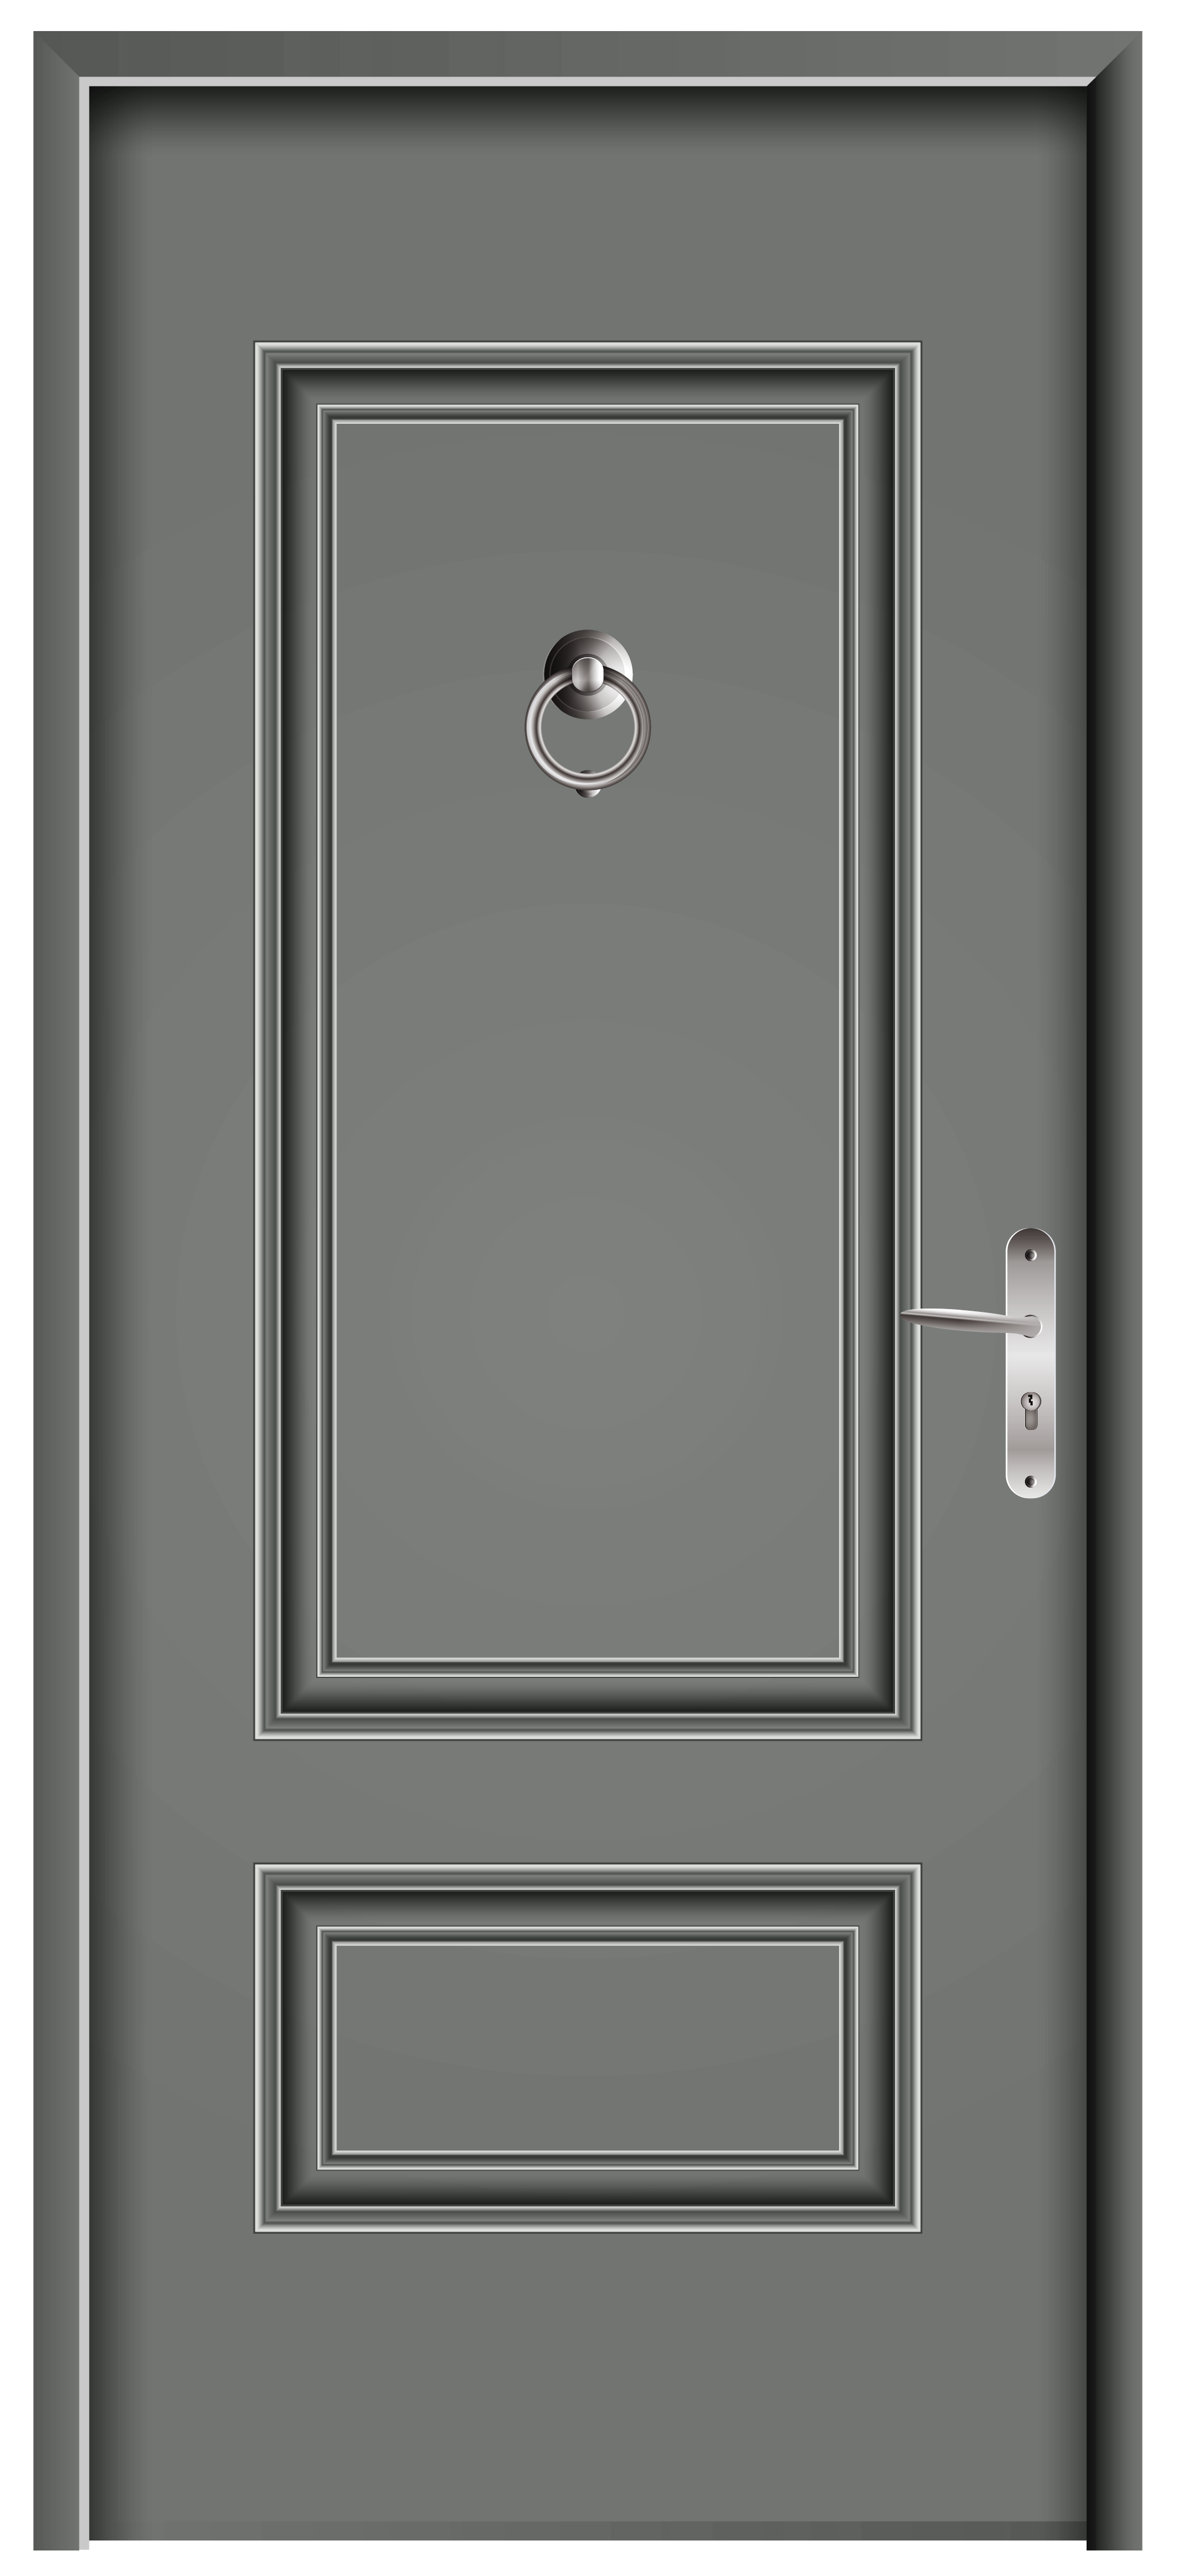 door clipart door clipart lock and key #15839